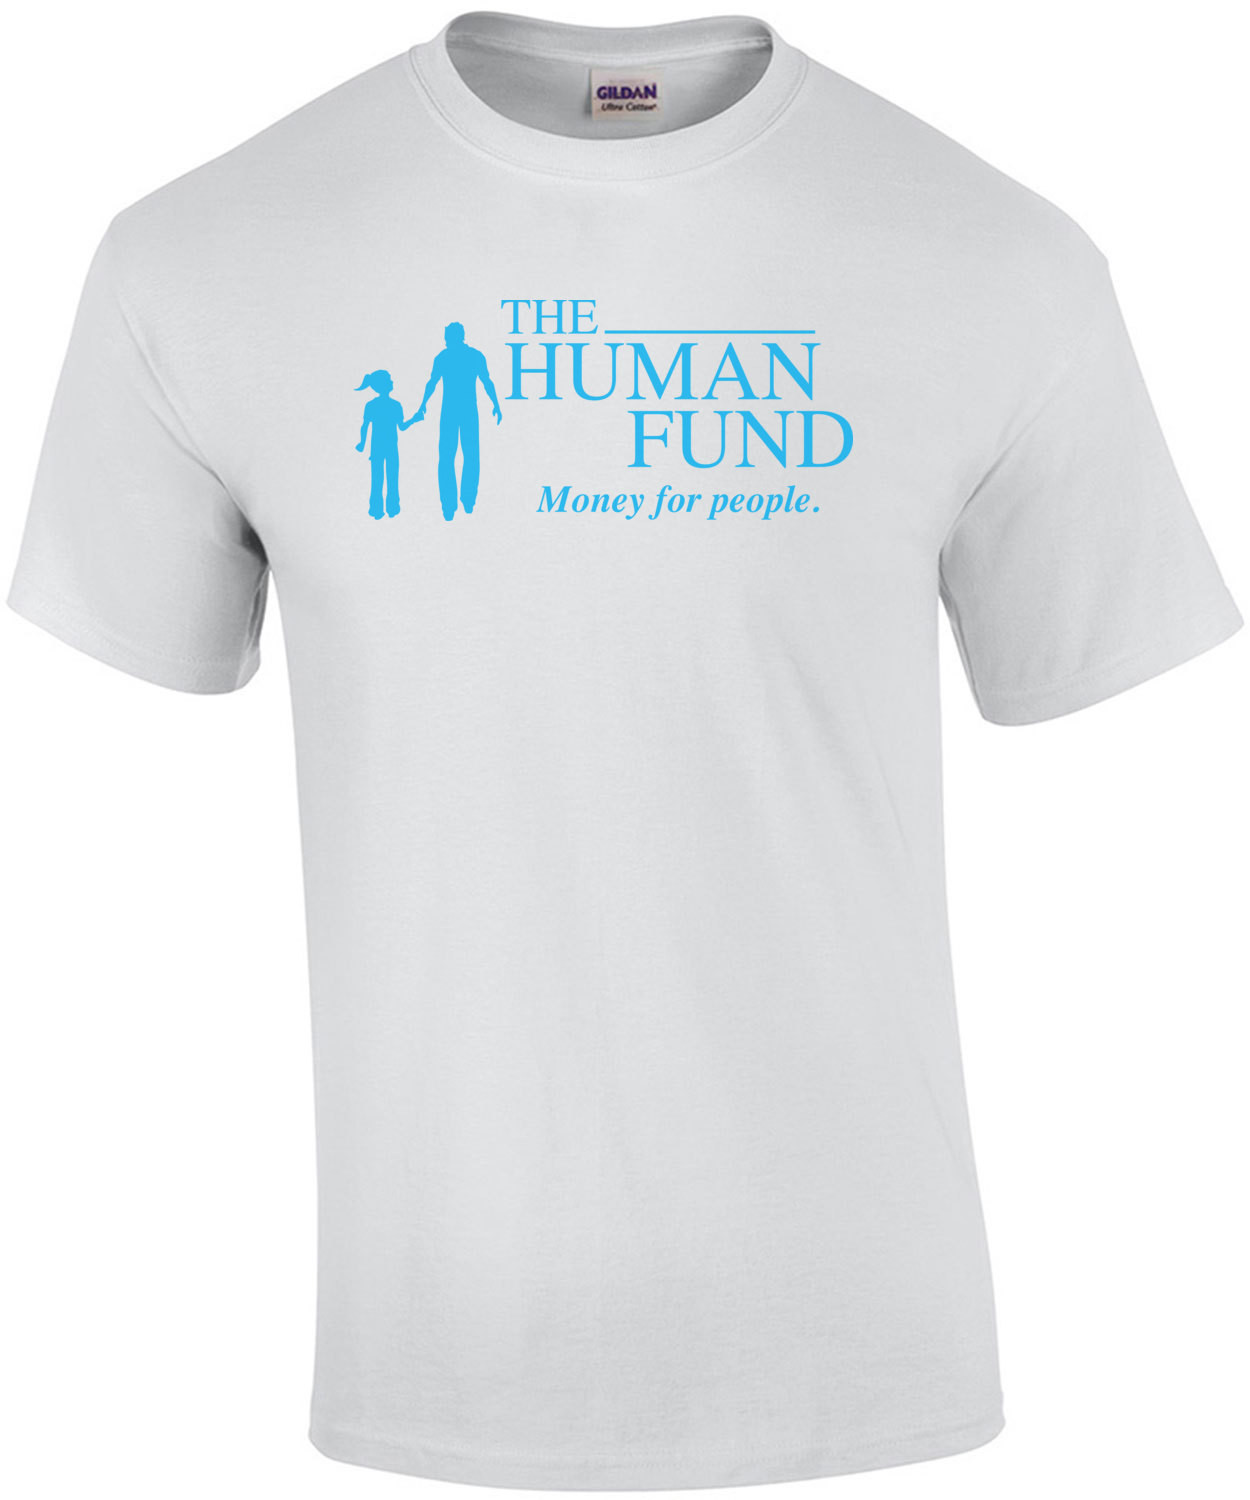 The Human Fund Money For People